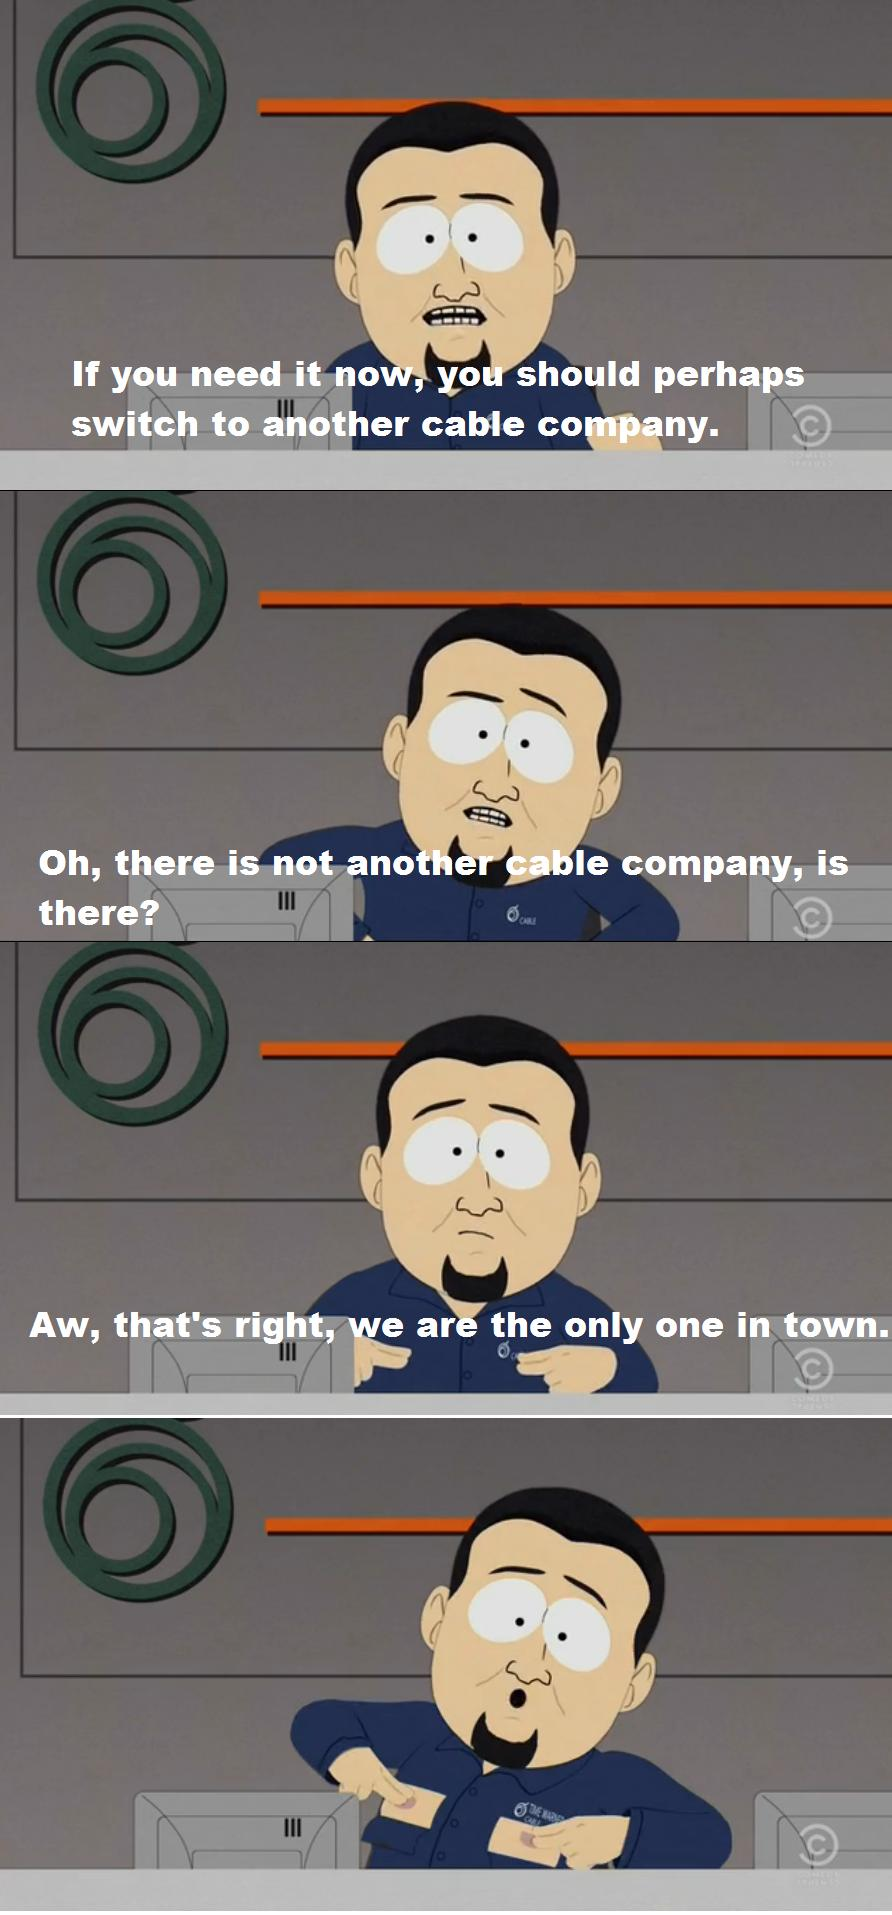 Comcast Quote South Park Makes Fun Of Comcast & Timewarner Cable